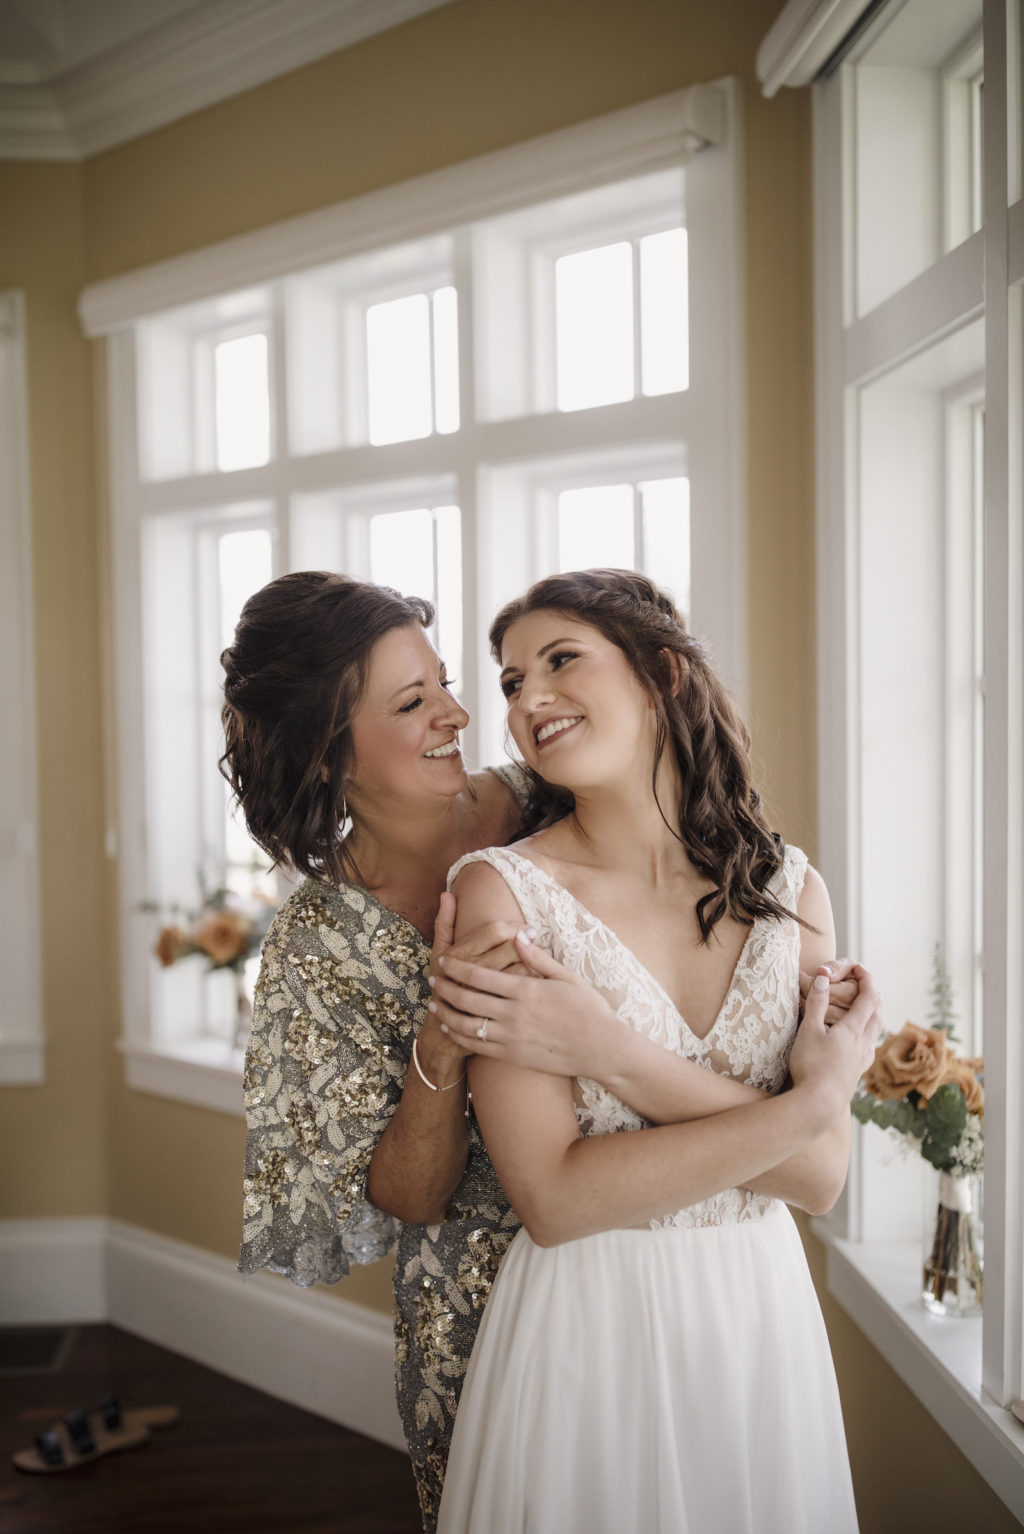 Mother of the Bride in Sparkly Dress   Helping Florida Bride Get Ready for Wedding Ceremony Portrait